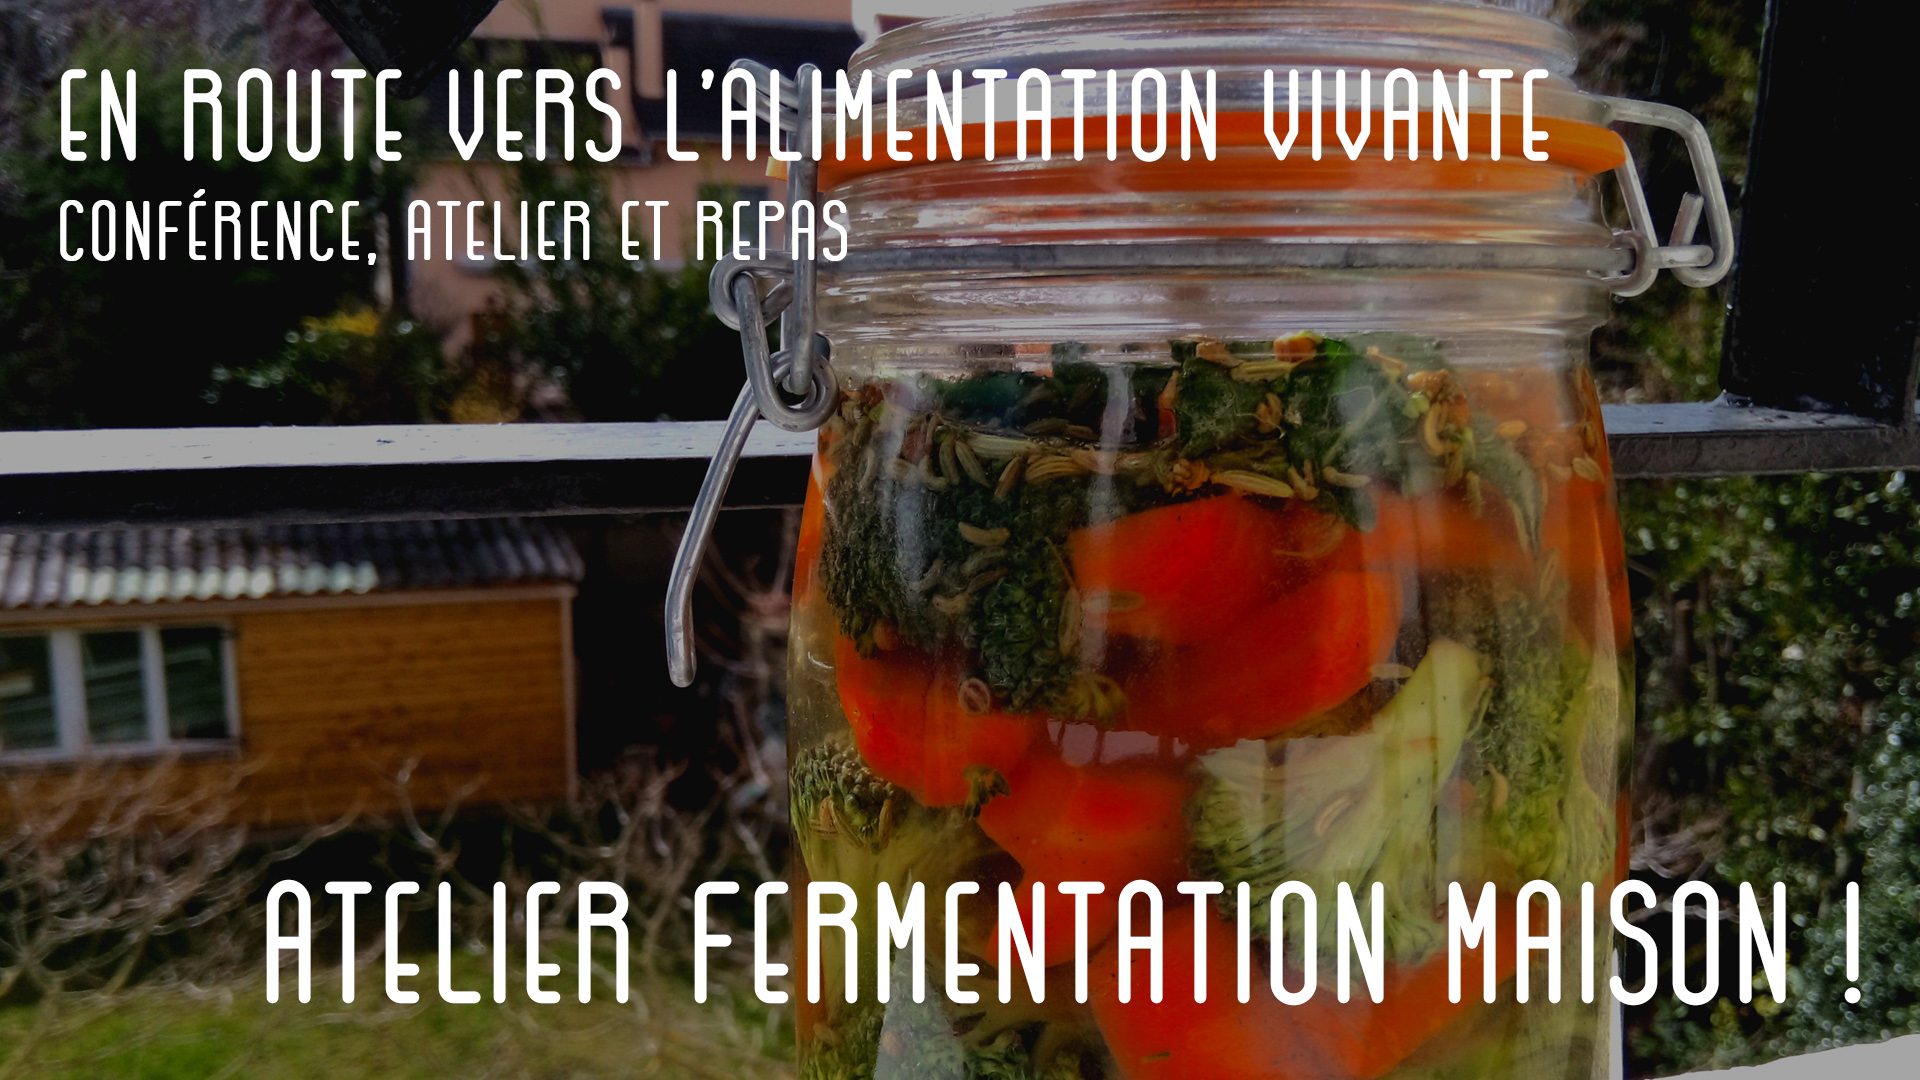 Image of the event : En route vers l'alimentation vivante - Atelier fermentation maison !